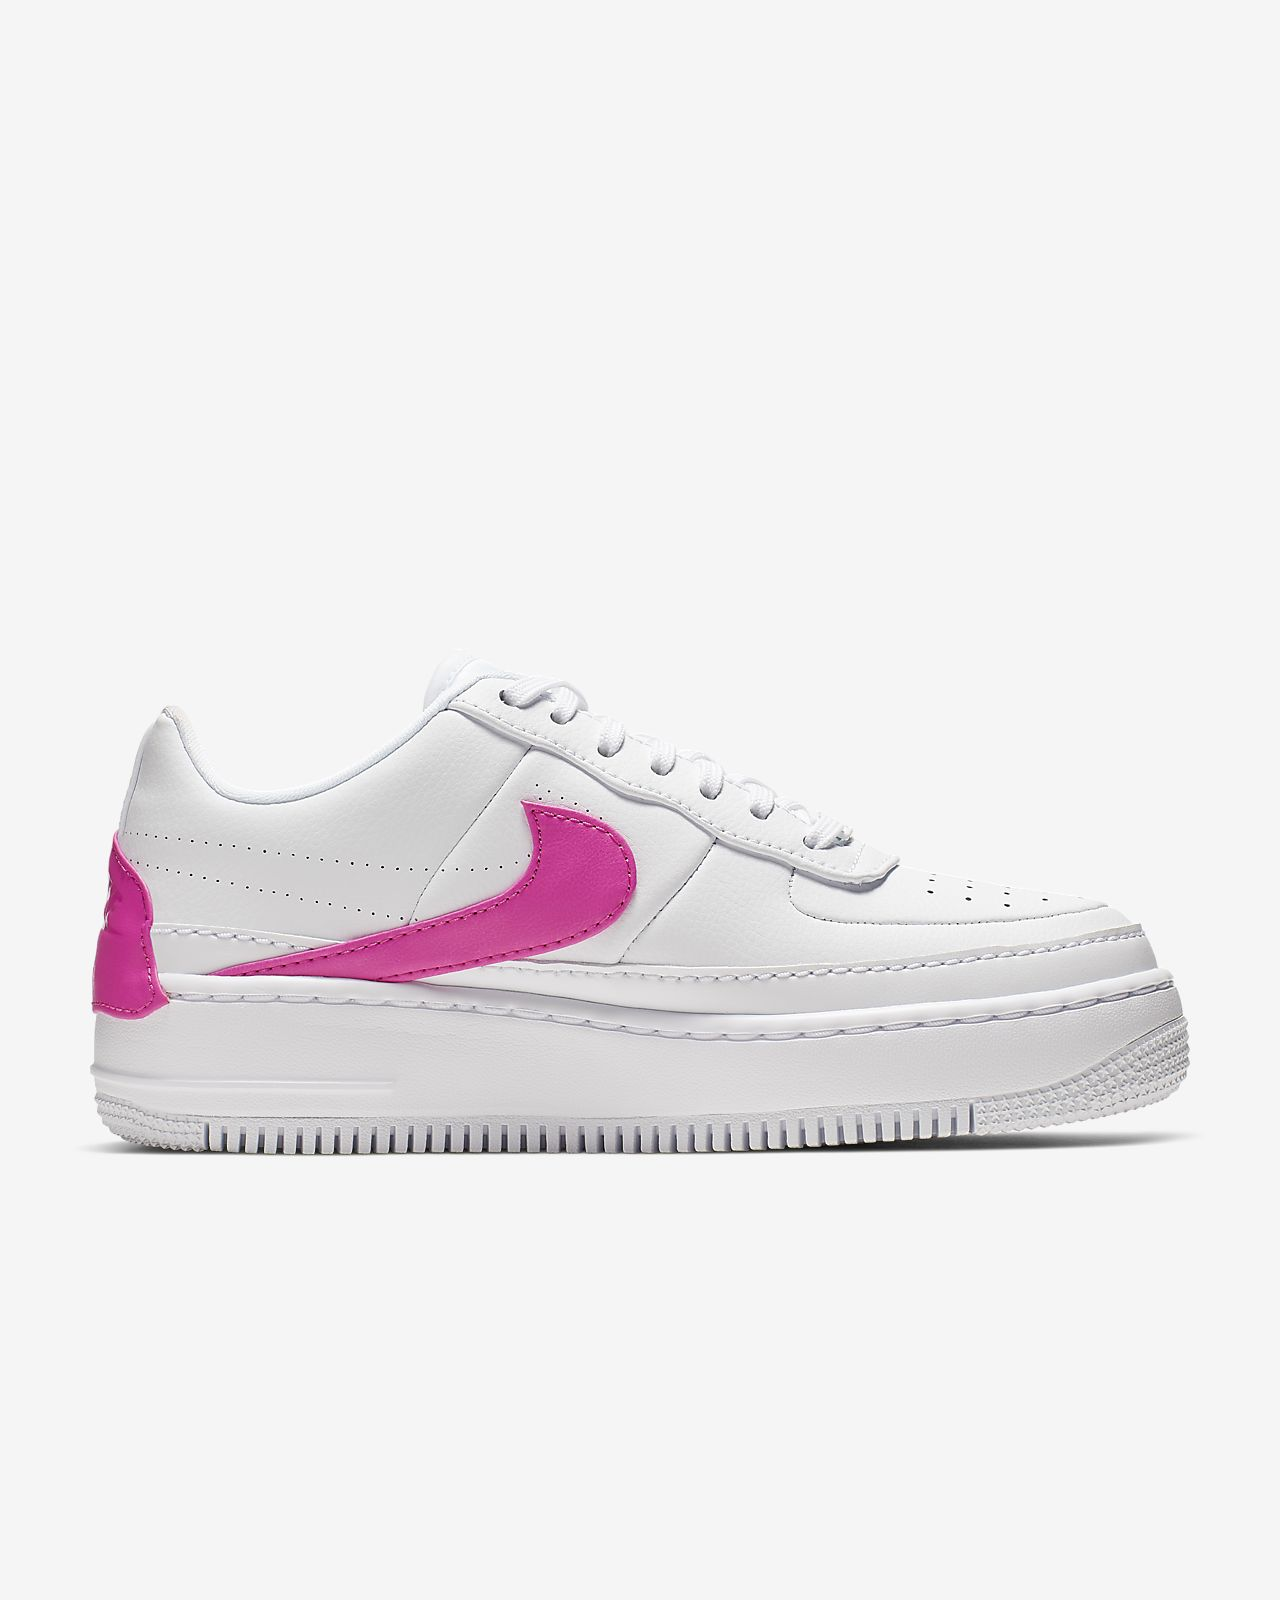 4d12d3ae37 Nike Air Force 1 Jester XX Shoe. Nike.com ZA